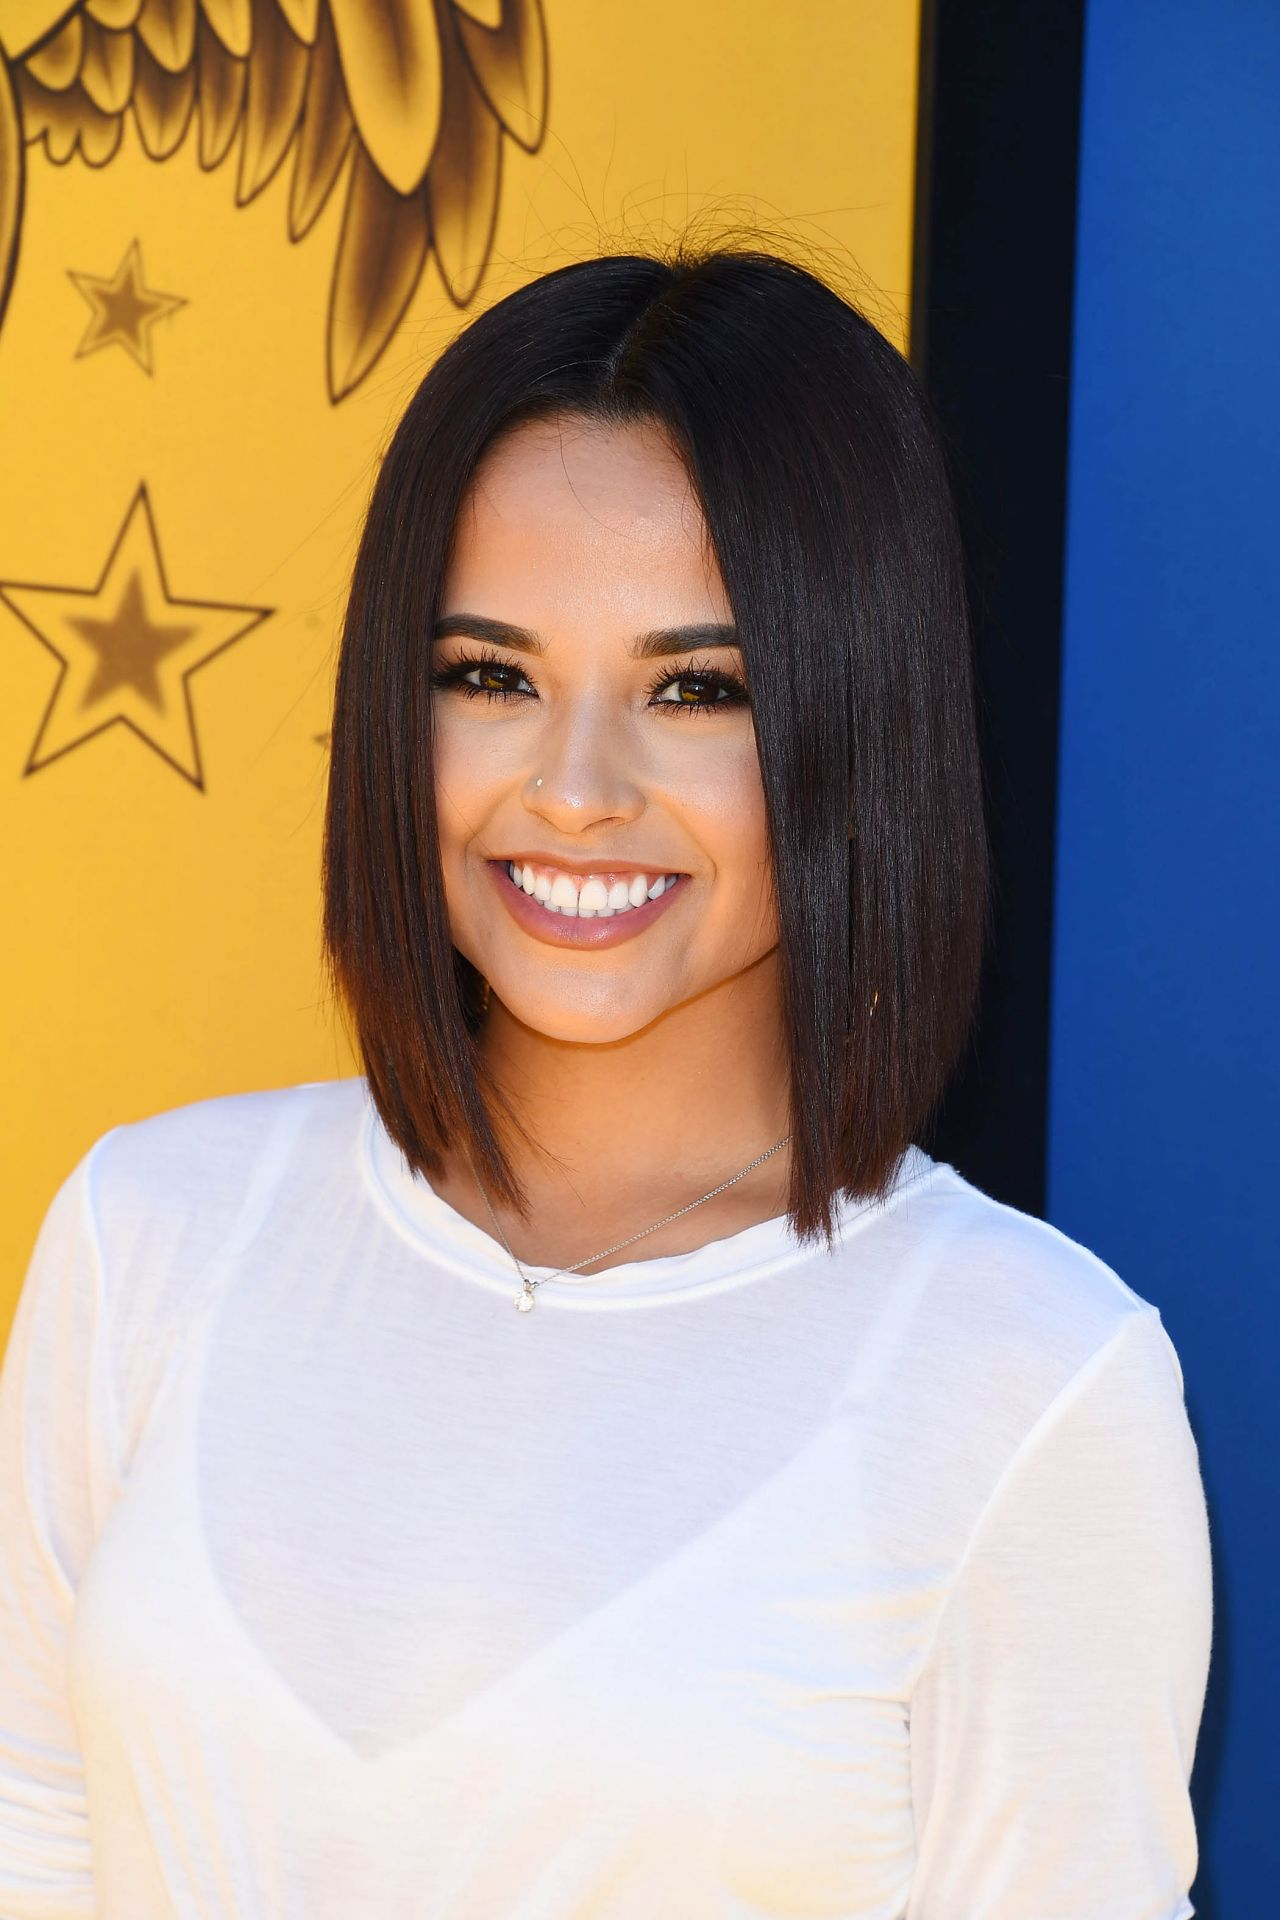 Becky G Despicable Me 3 Premiere In Los Angeles 06 24 2017